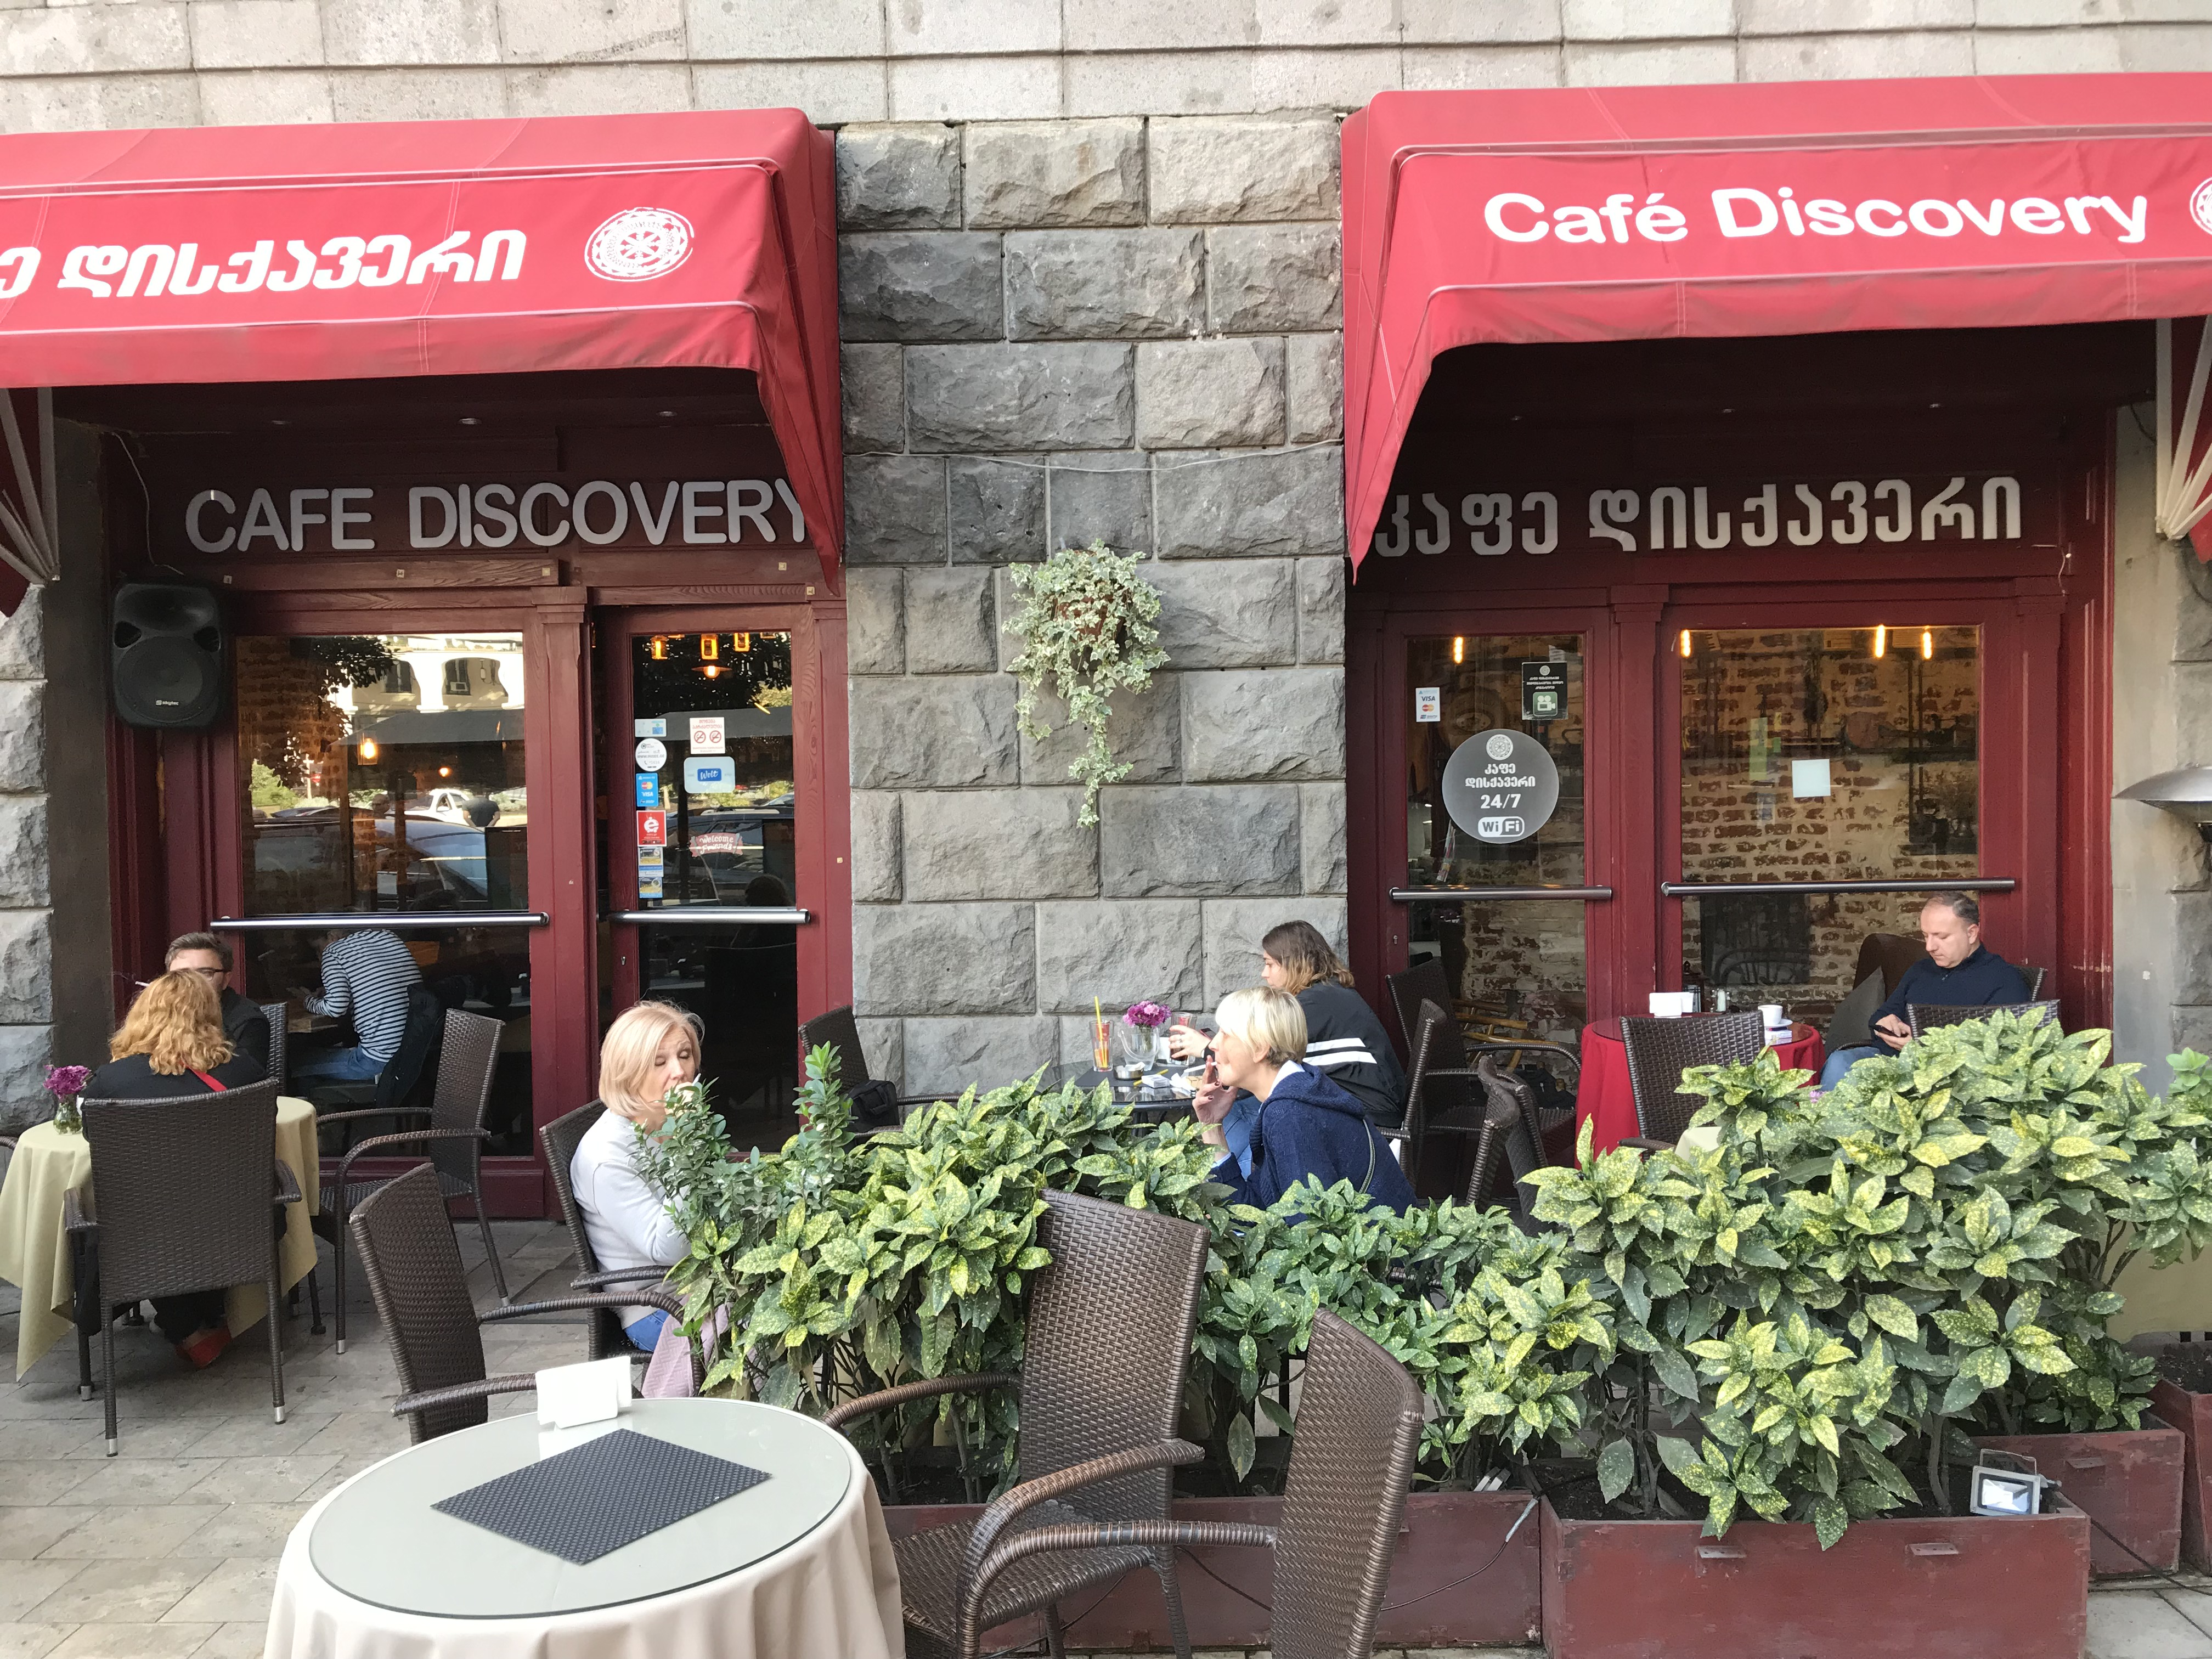 Cafe Discovery